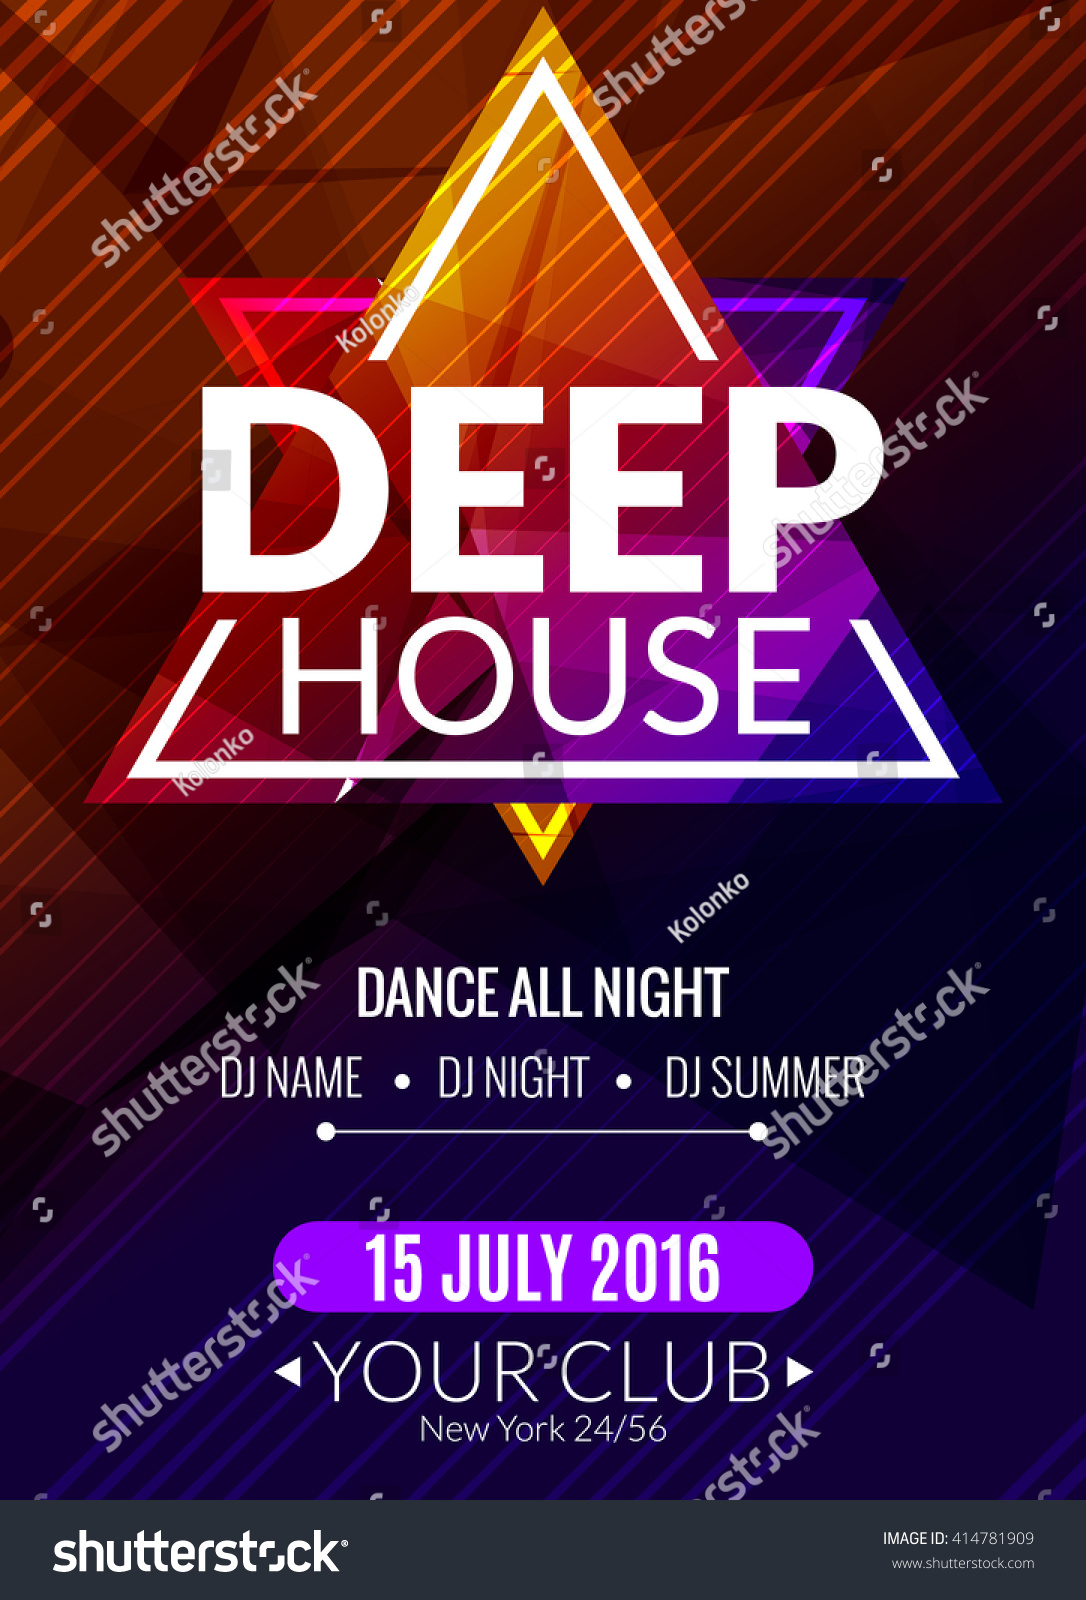 Club electronic deep house music poster stock vector for Deep house music